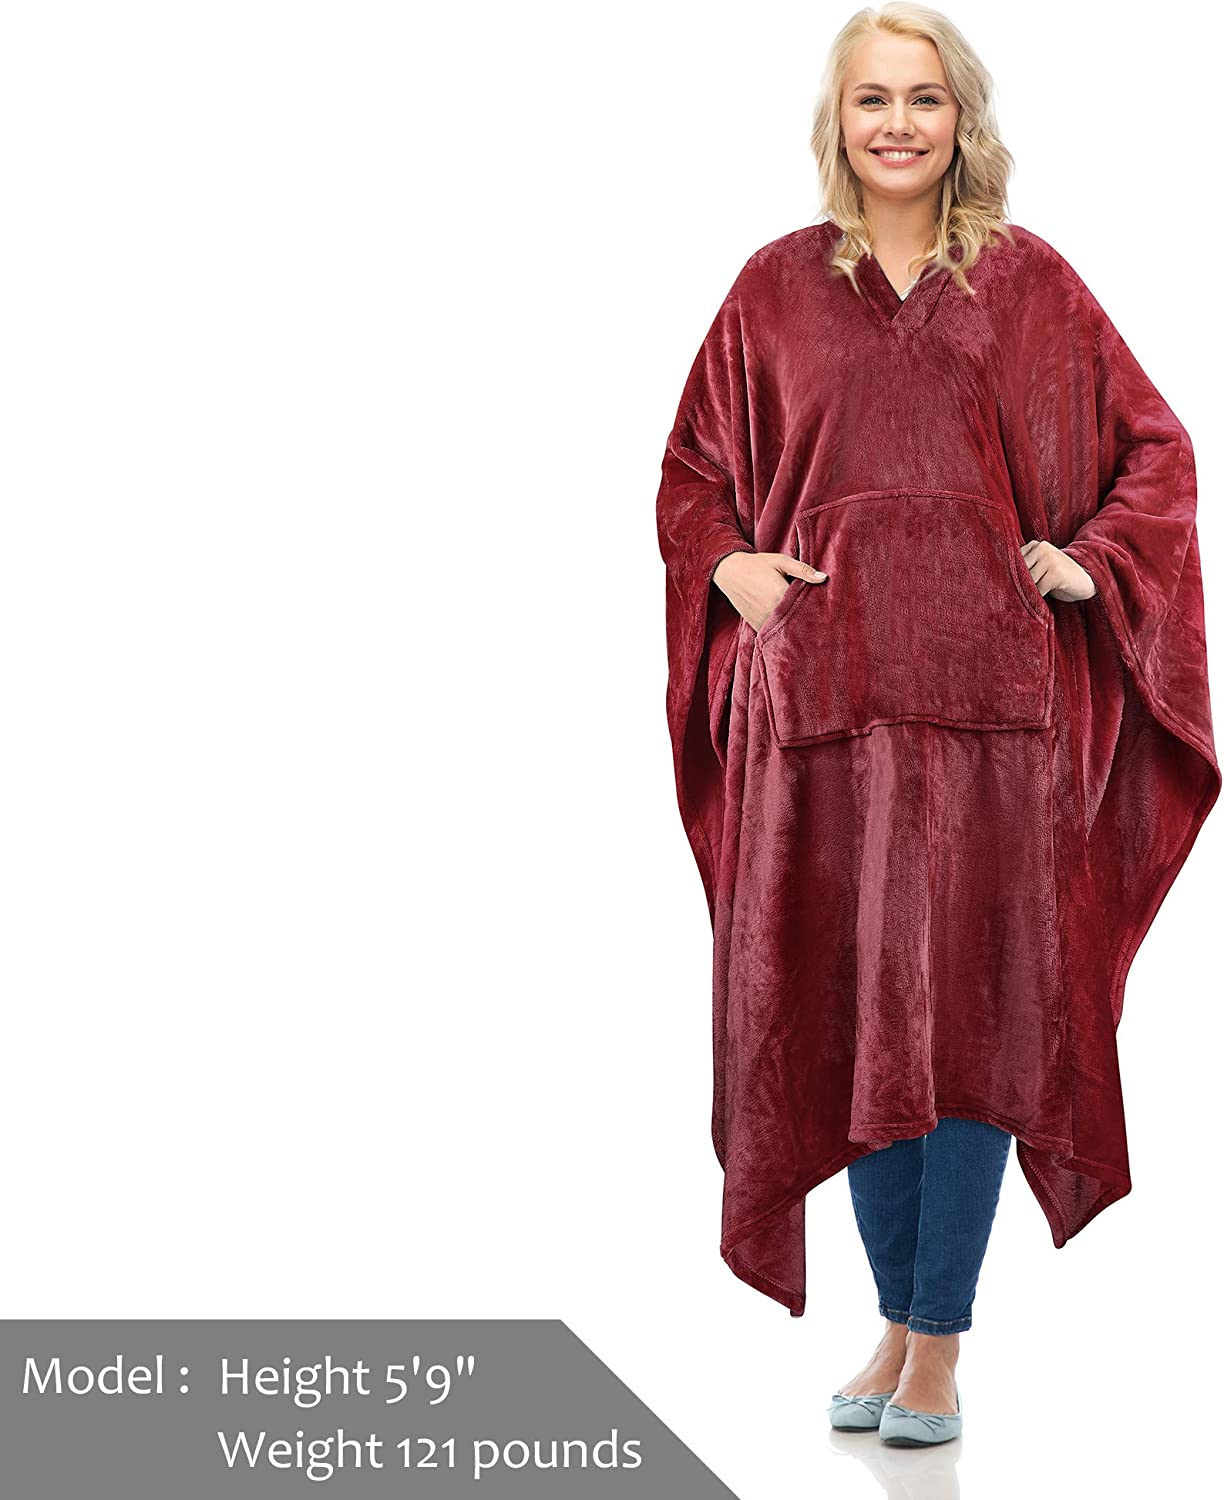 Catalonia Fleece Wearable Blanket Poncho for Adult Women Men,Wrap Blanket Cape with Pocket,Warm,Soft,Cozy,Snuggly,Comfort Gift,No Sleeves,Aqua